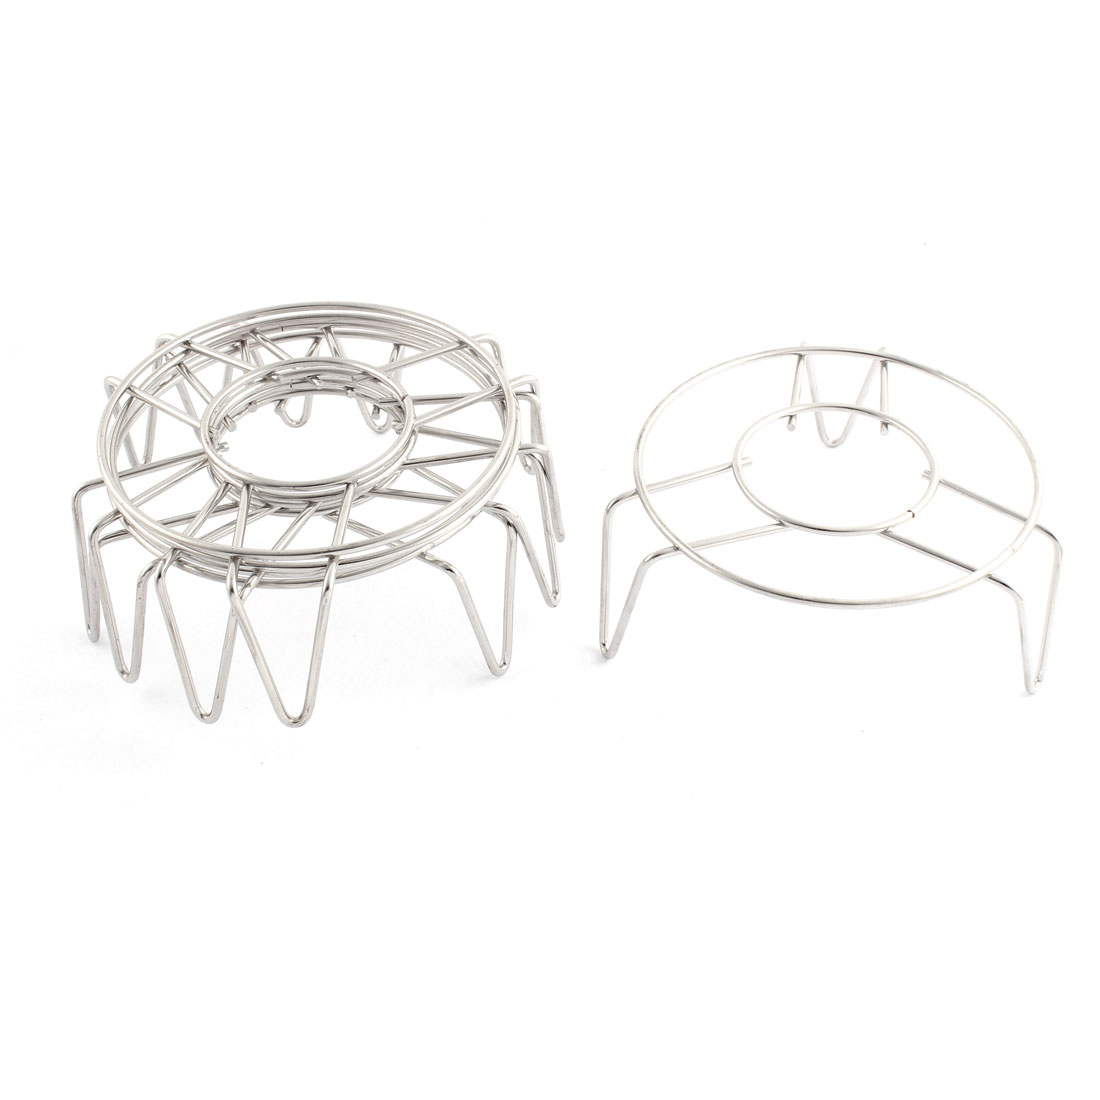 Kitchen Metal Wire Round Shaped Food Steaming Steamer Rack Stand Silver Tone 4.7 Inch Diameter 5pcs